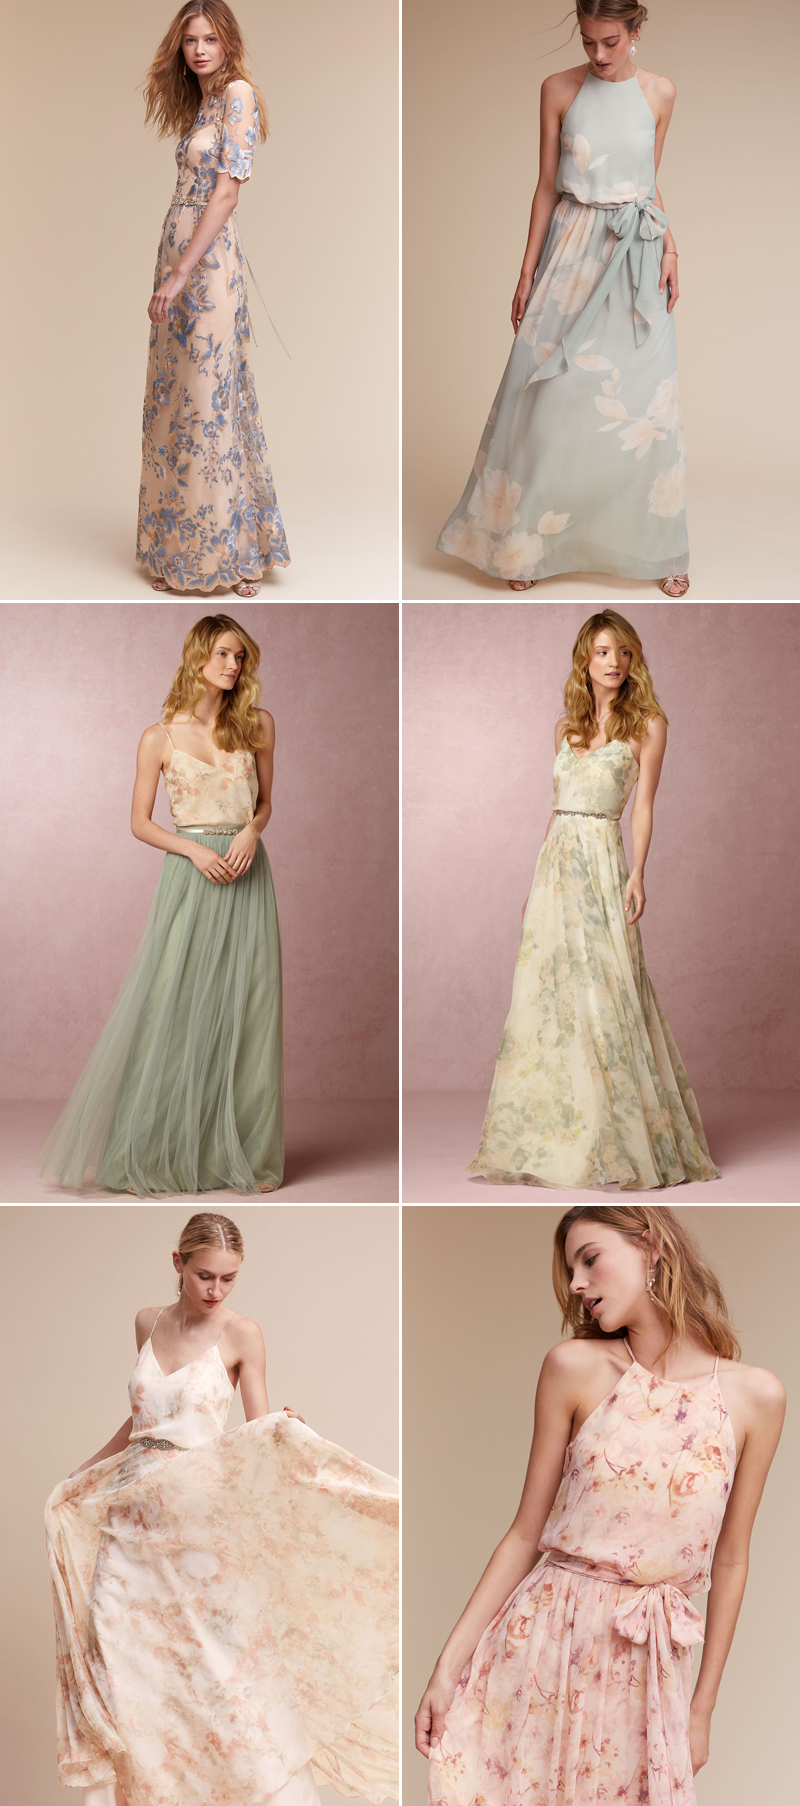 Love Blooms Romantic Floral Bridesmaid Dresses Your Girls